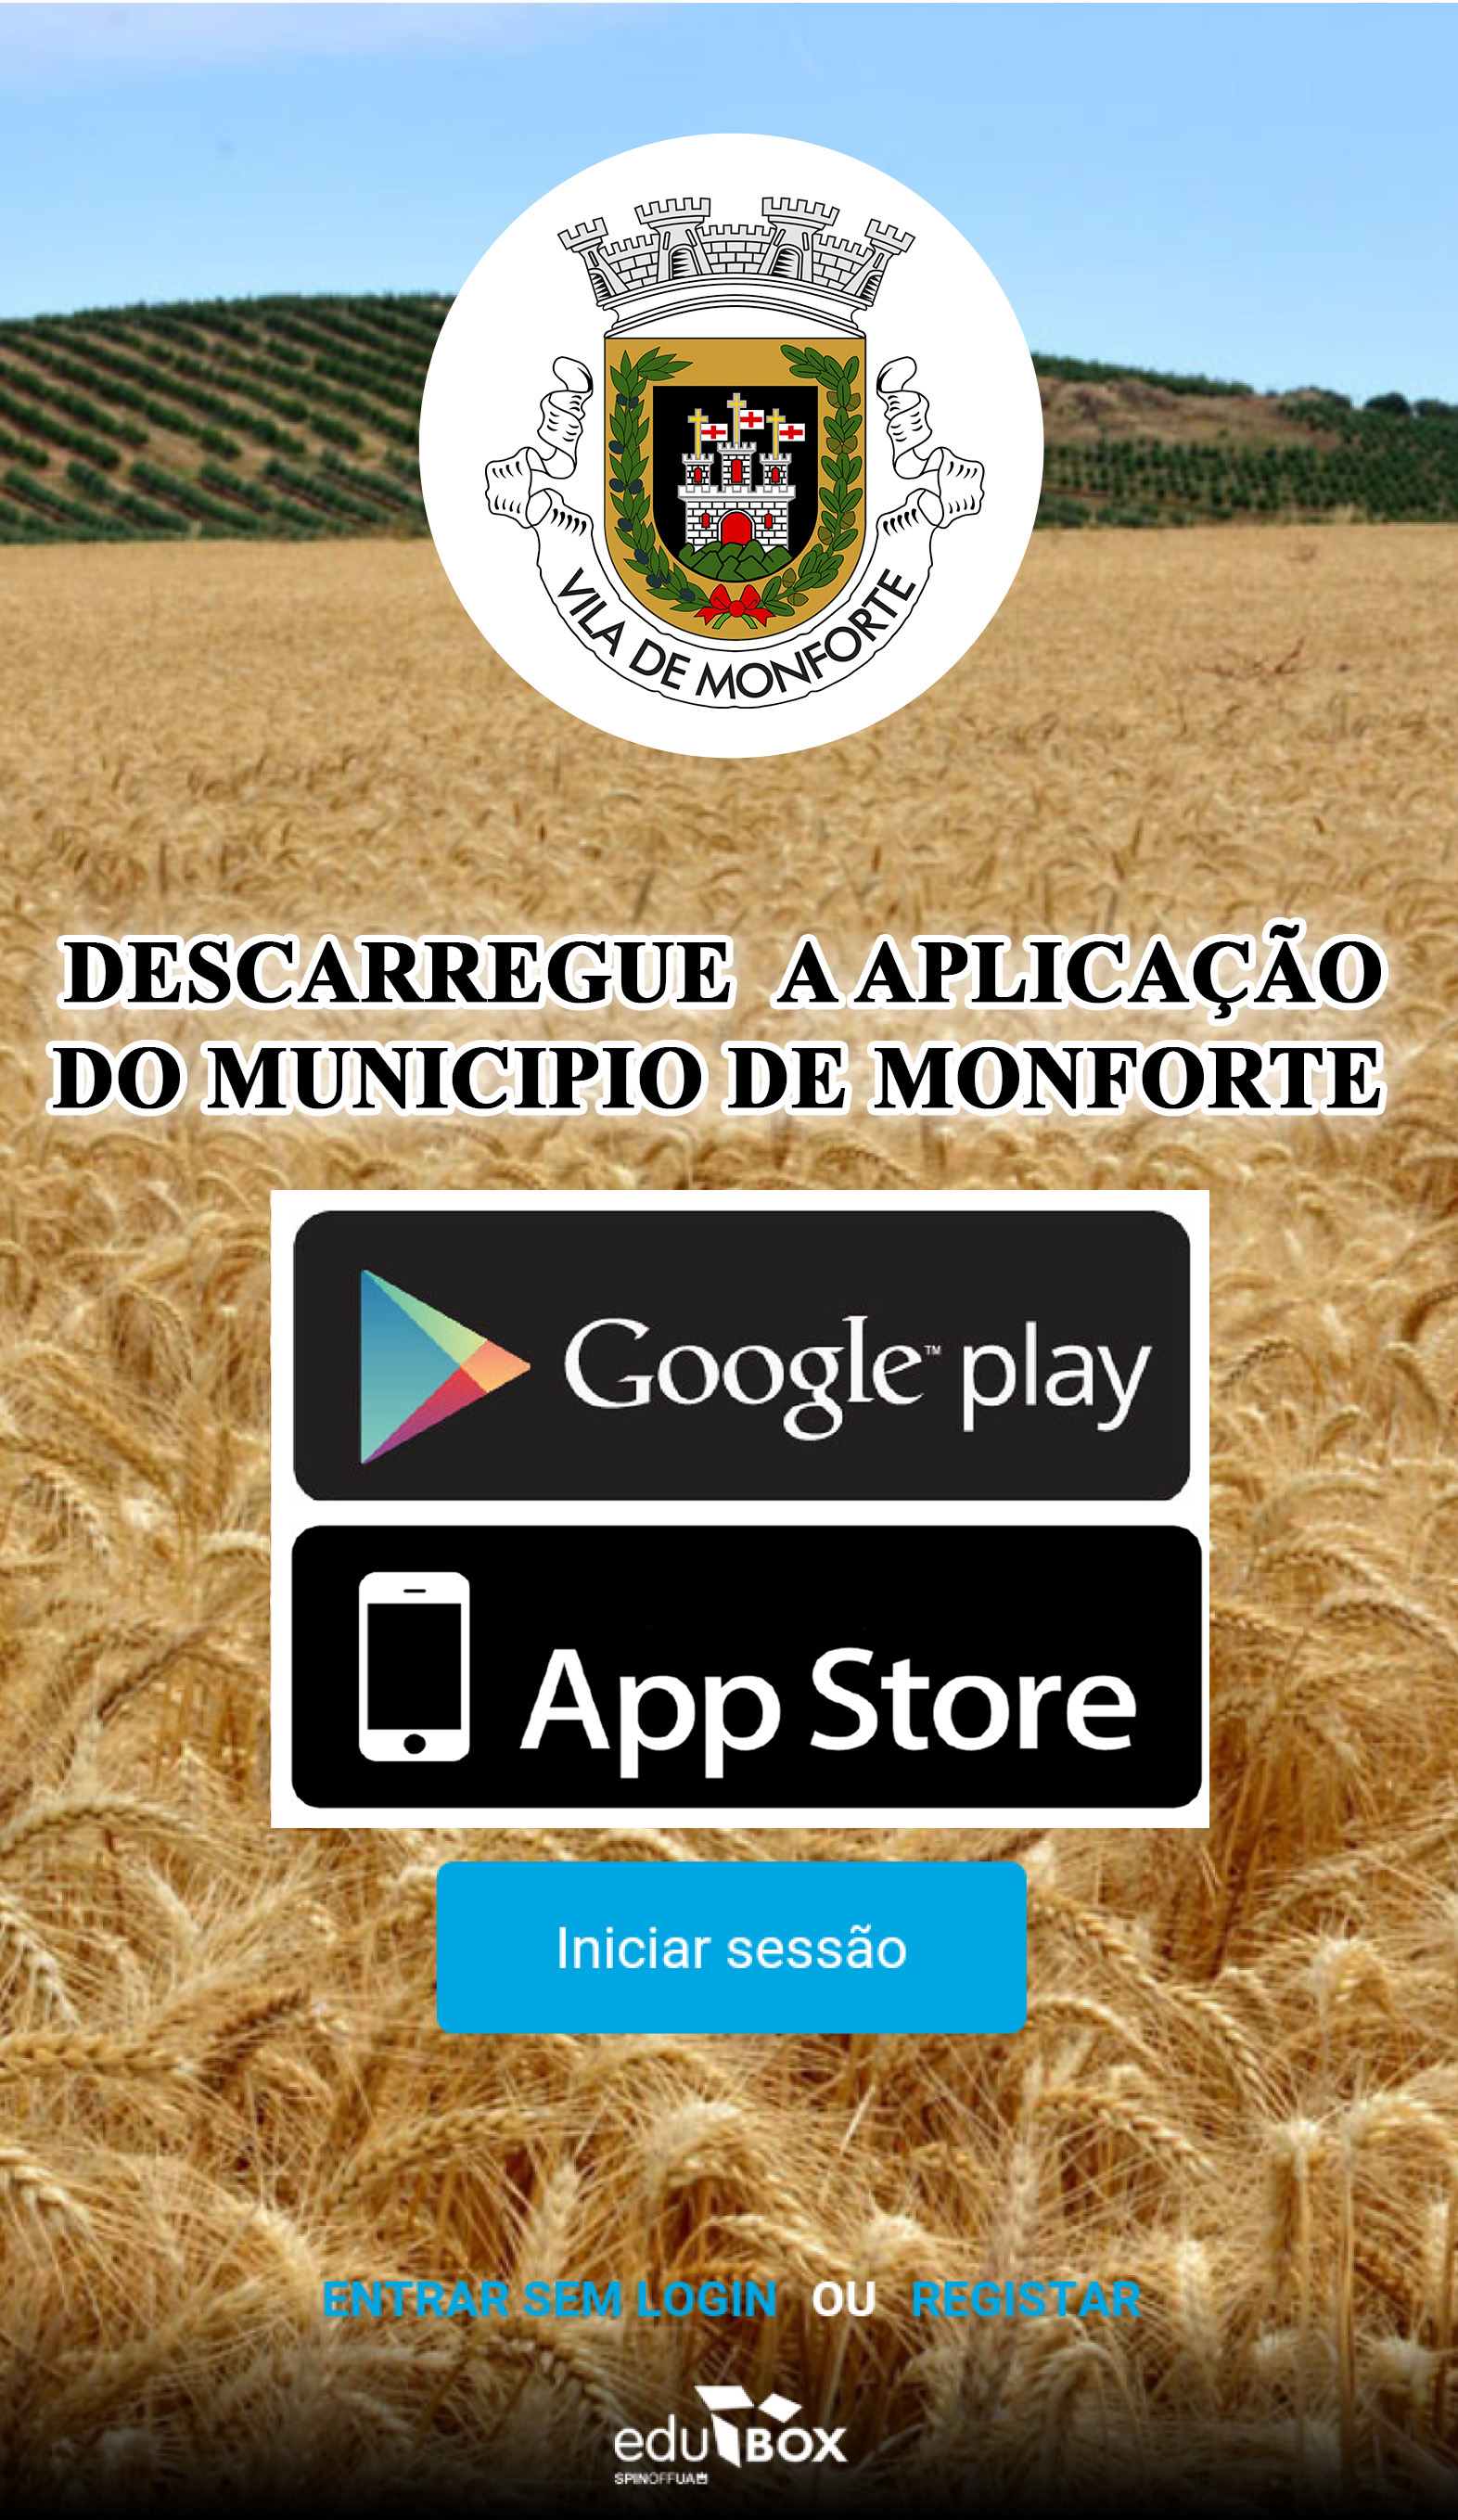 2017-08-28-cartaz-app-do-municipio-de-monforte